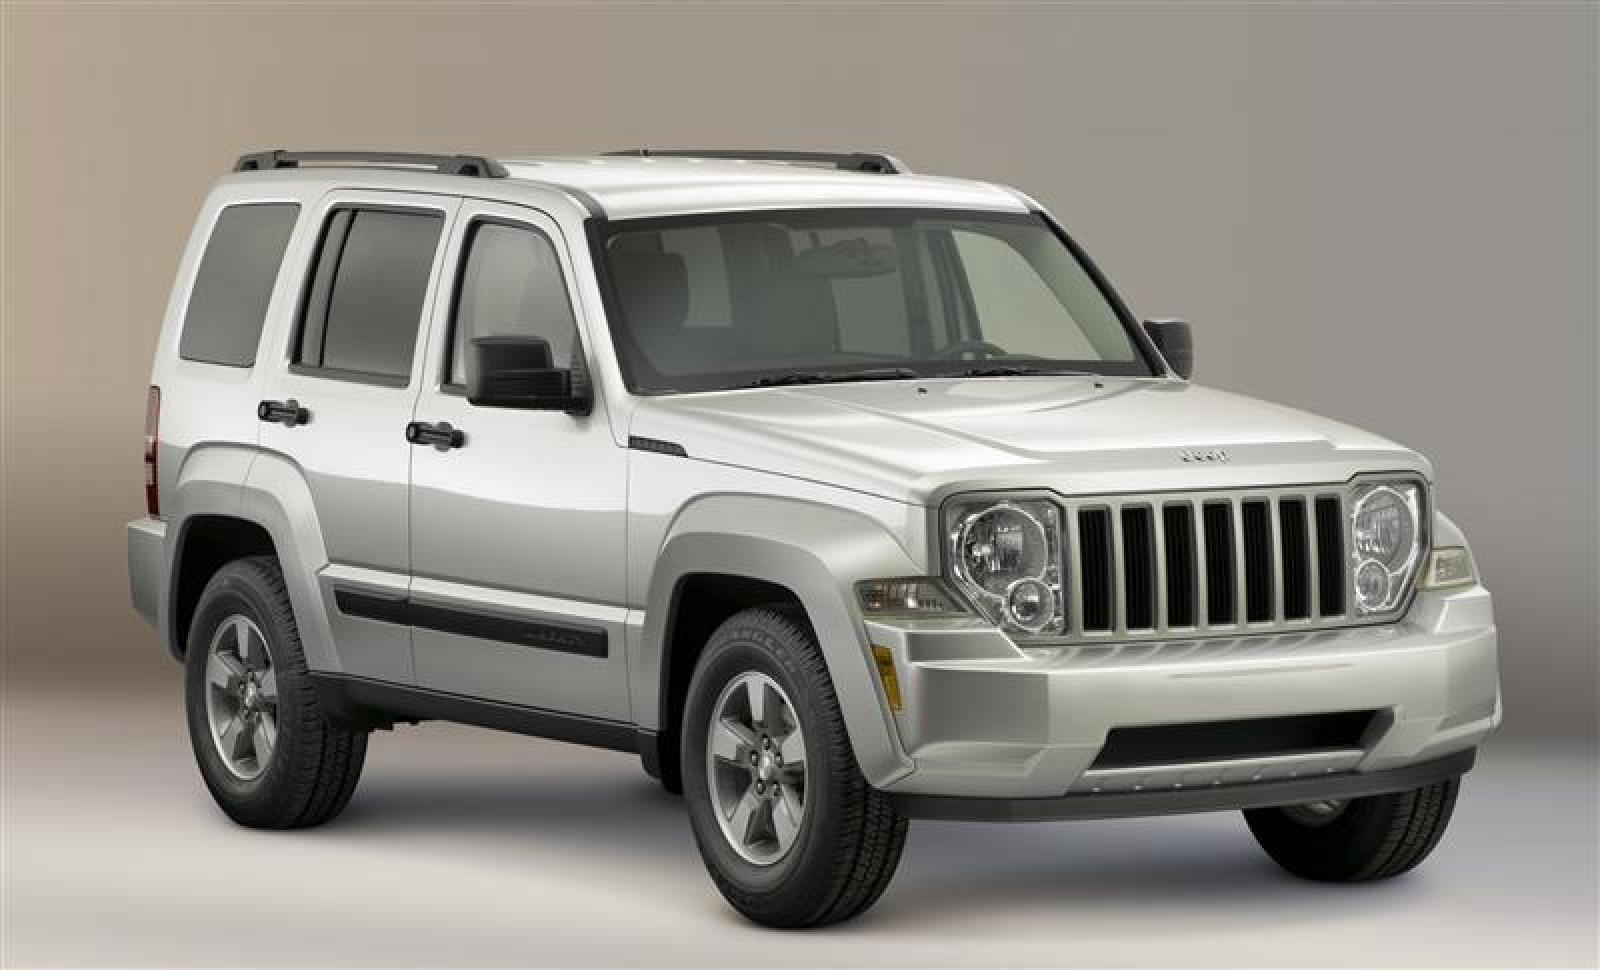 2010 jeep liberty information and photos zombiedrive. Black Bedroom Furniture Sets. Home Design Ideas